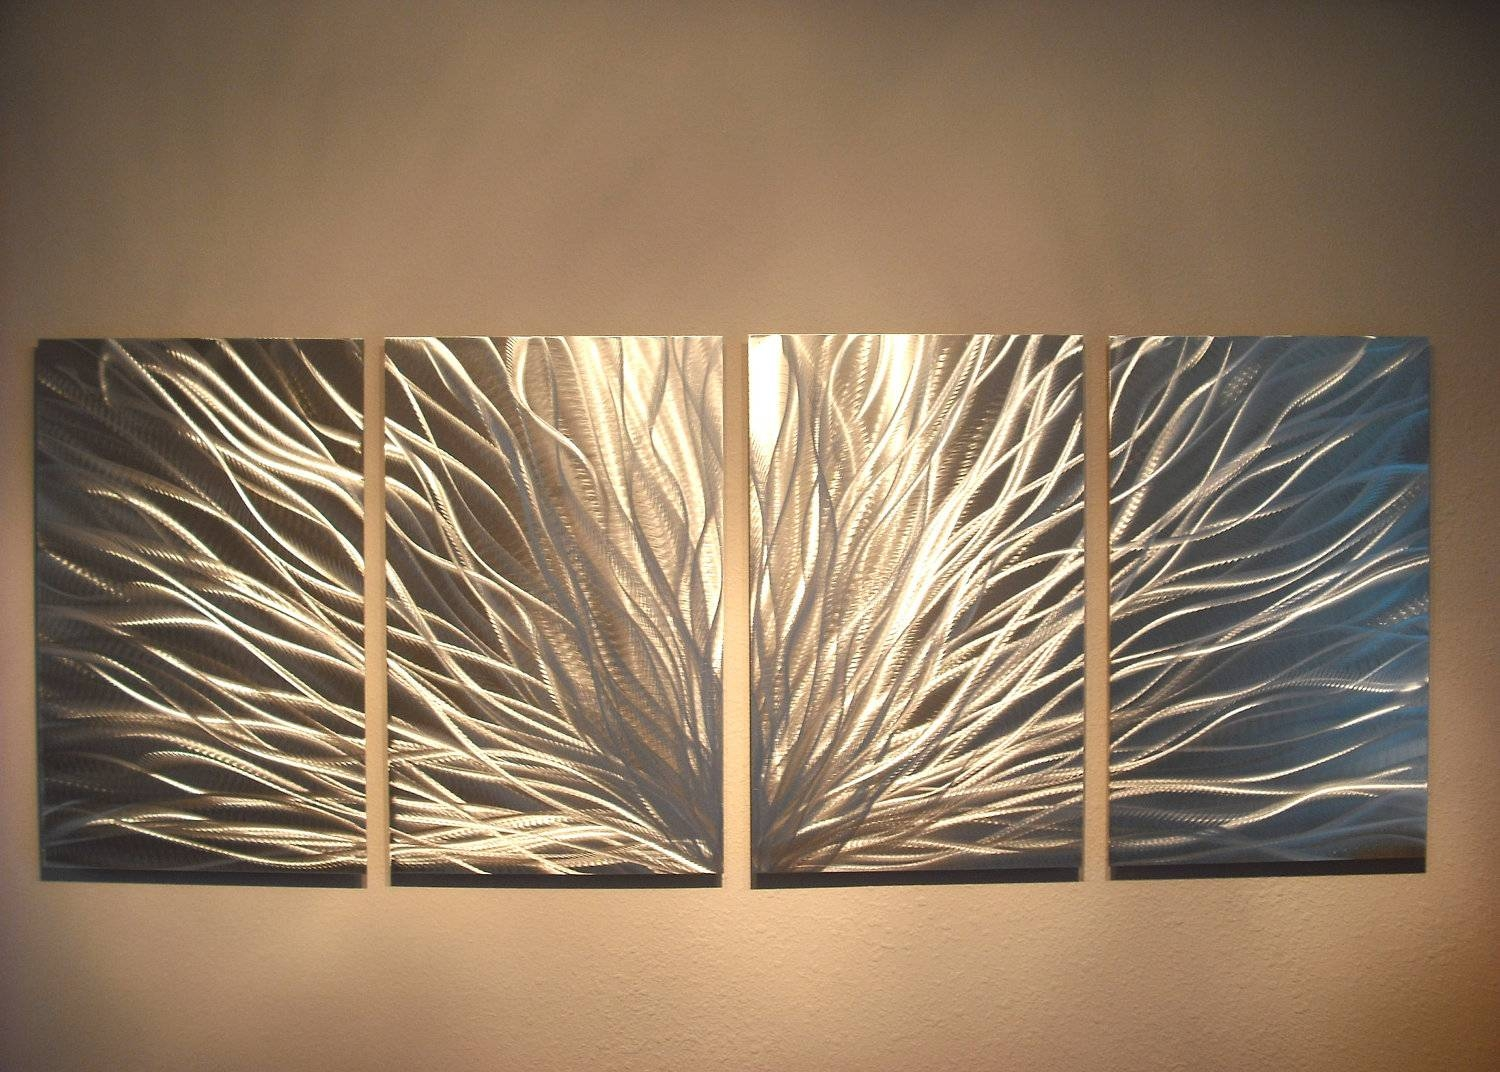 Radiance – Abstract Metal Wall Art Contemporary Modern Decor For Most Current Metal Wall Art Decor (Gallery 1 of 20)